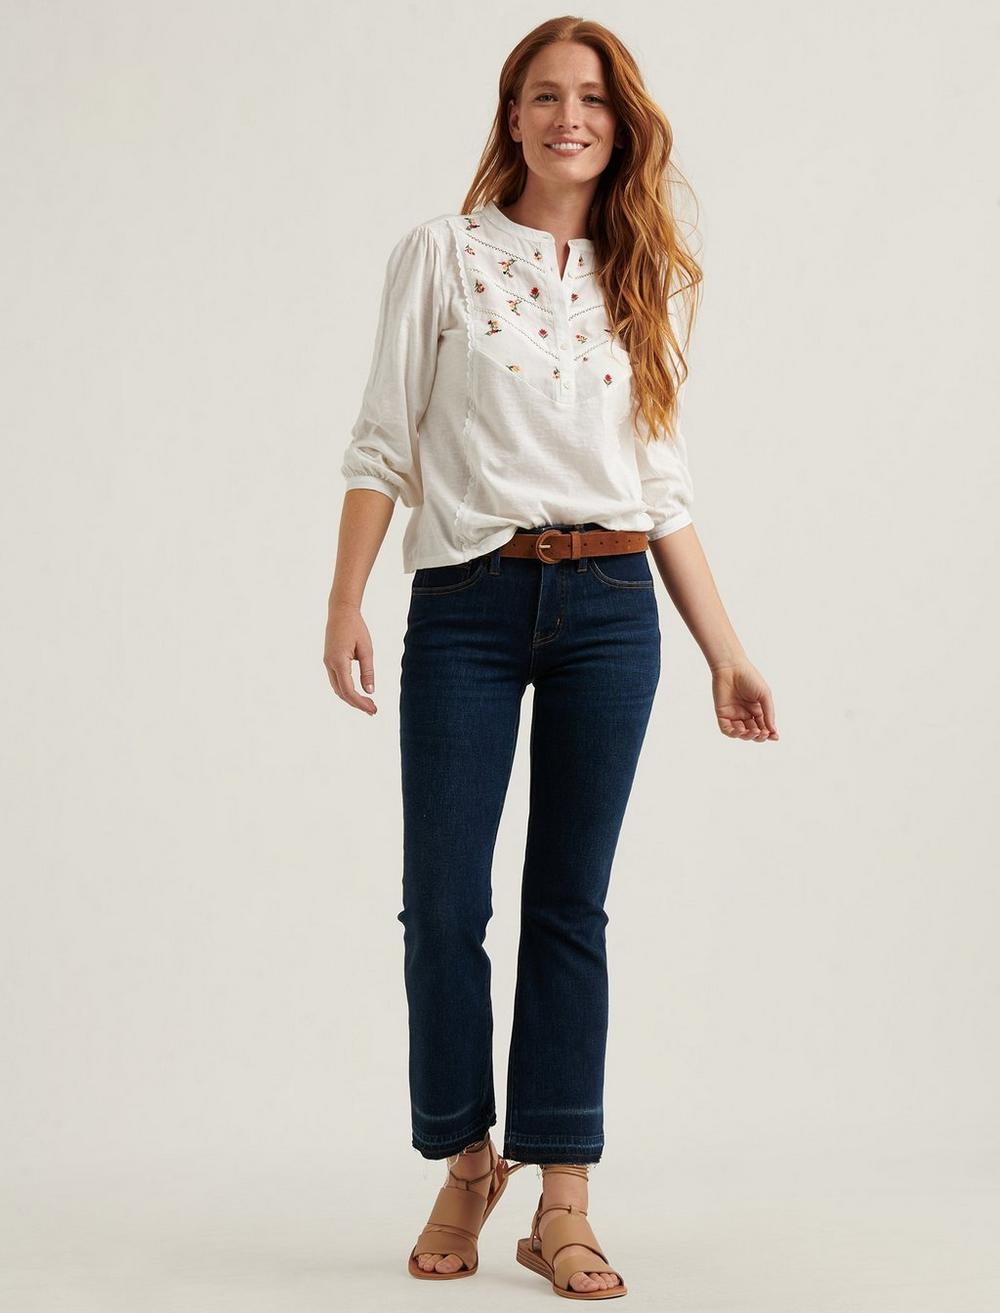 EMBROIDERED HENLEY TOP, image 2